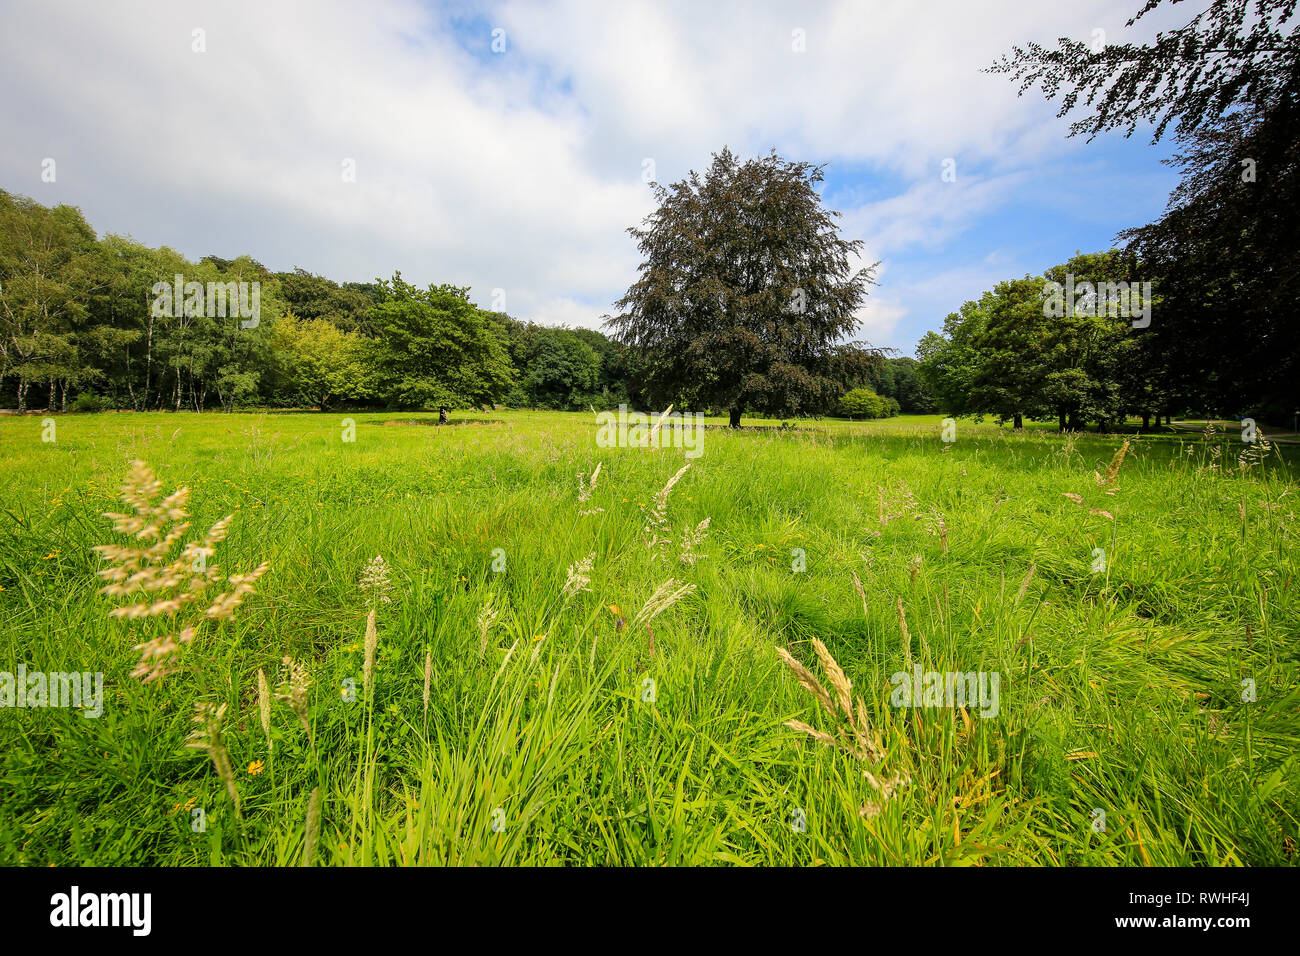 Essen, North Rhine-Westphalia, Ruhr area, Germany - The Hallopark between Stoppenberg and Schonnebeck is one of the oldest green spaces in Essen, here - Stock Image